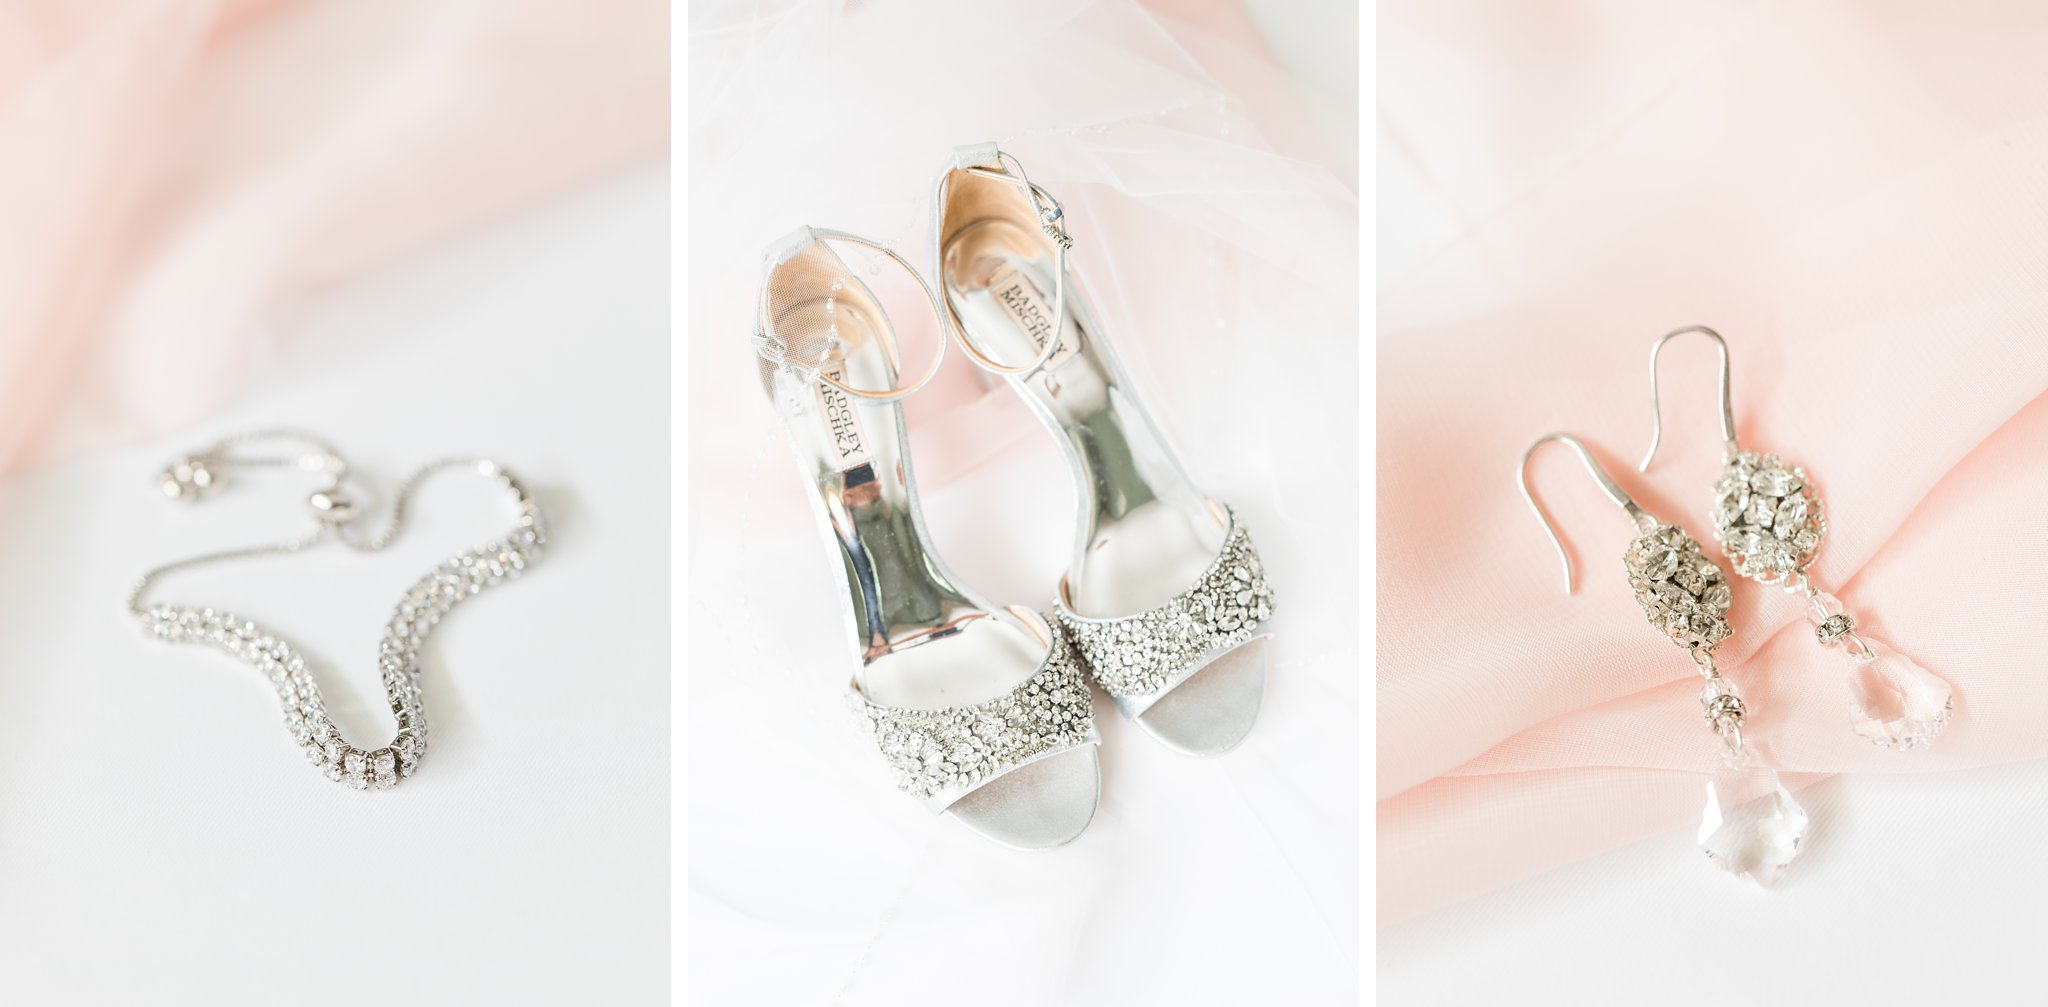 Silver Badgely Miscka shoes Sarah Walsh earrings Horticulture Building wedding at Lansdowne Amy Pinder Photography